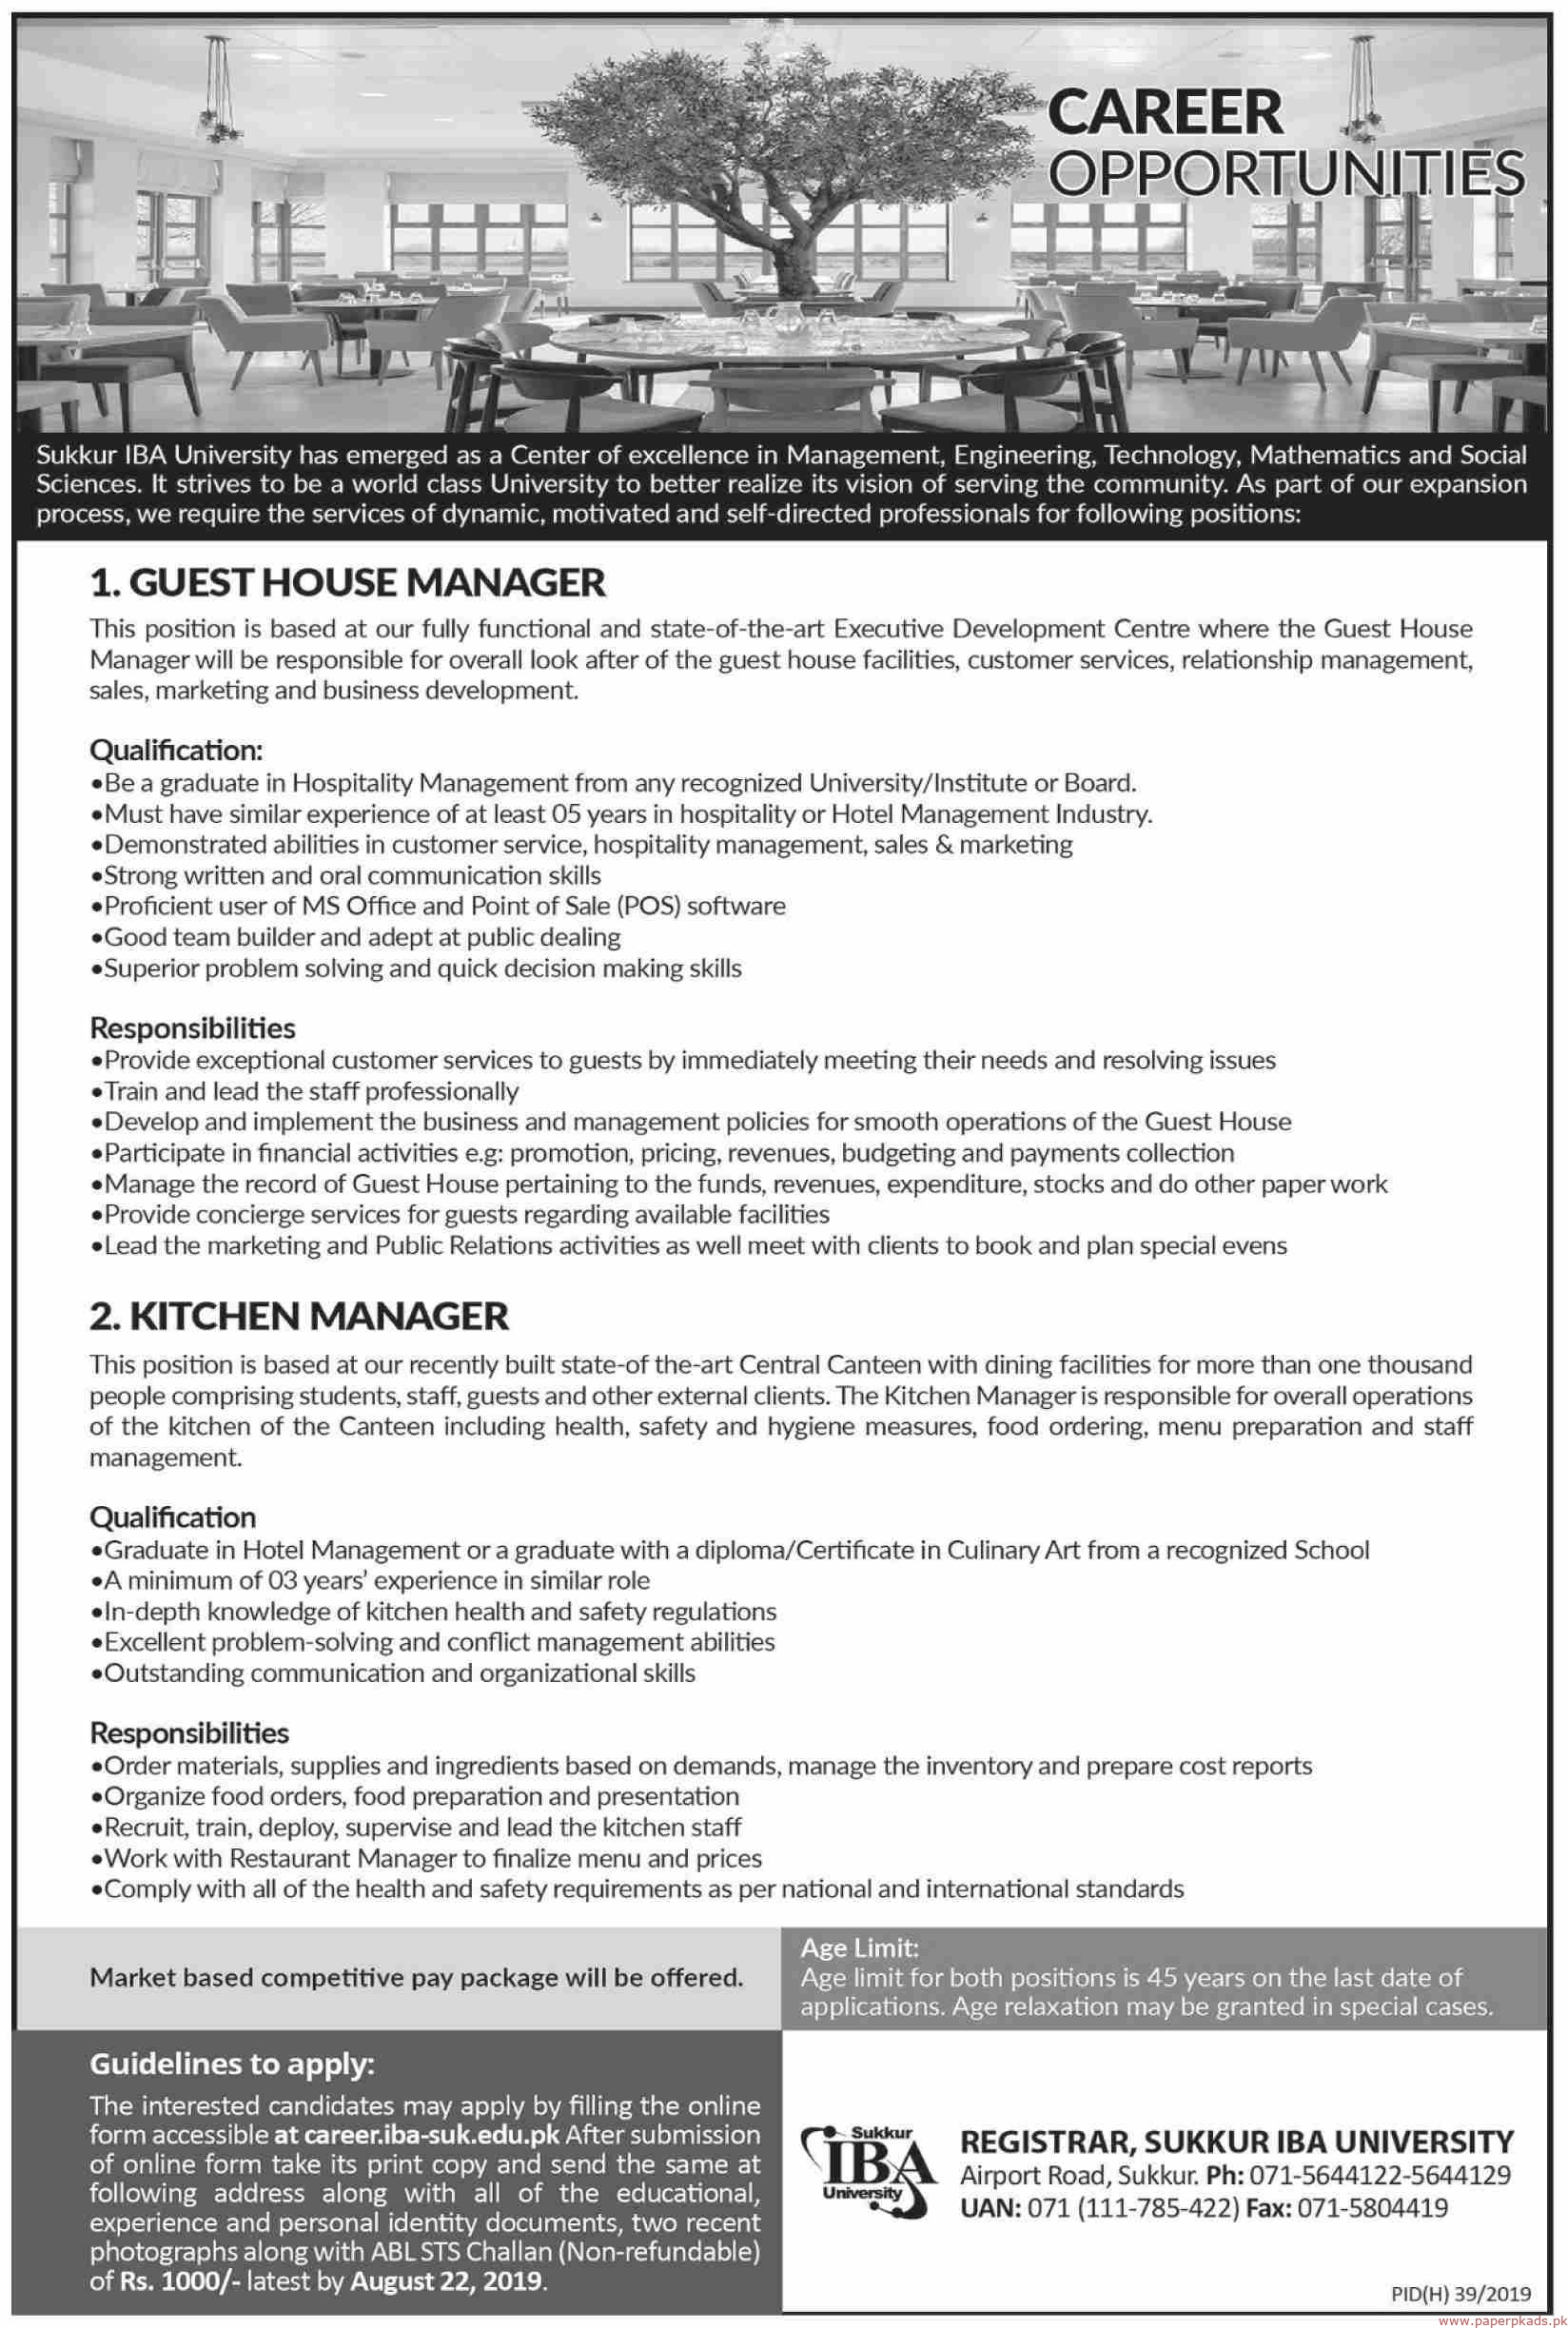 Sukkur IBA University Jobs 2019 Latest